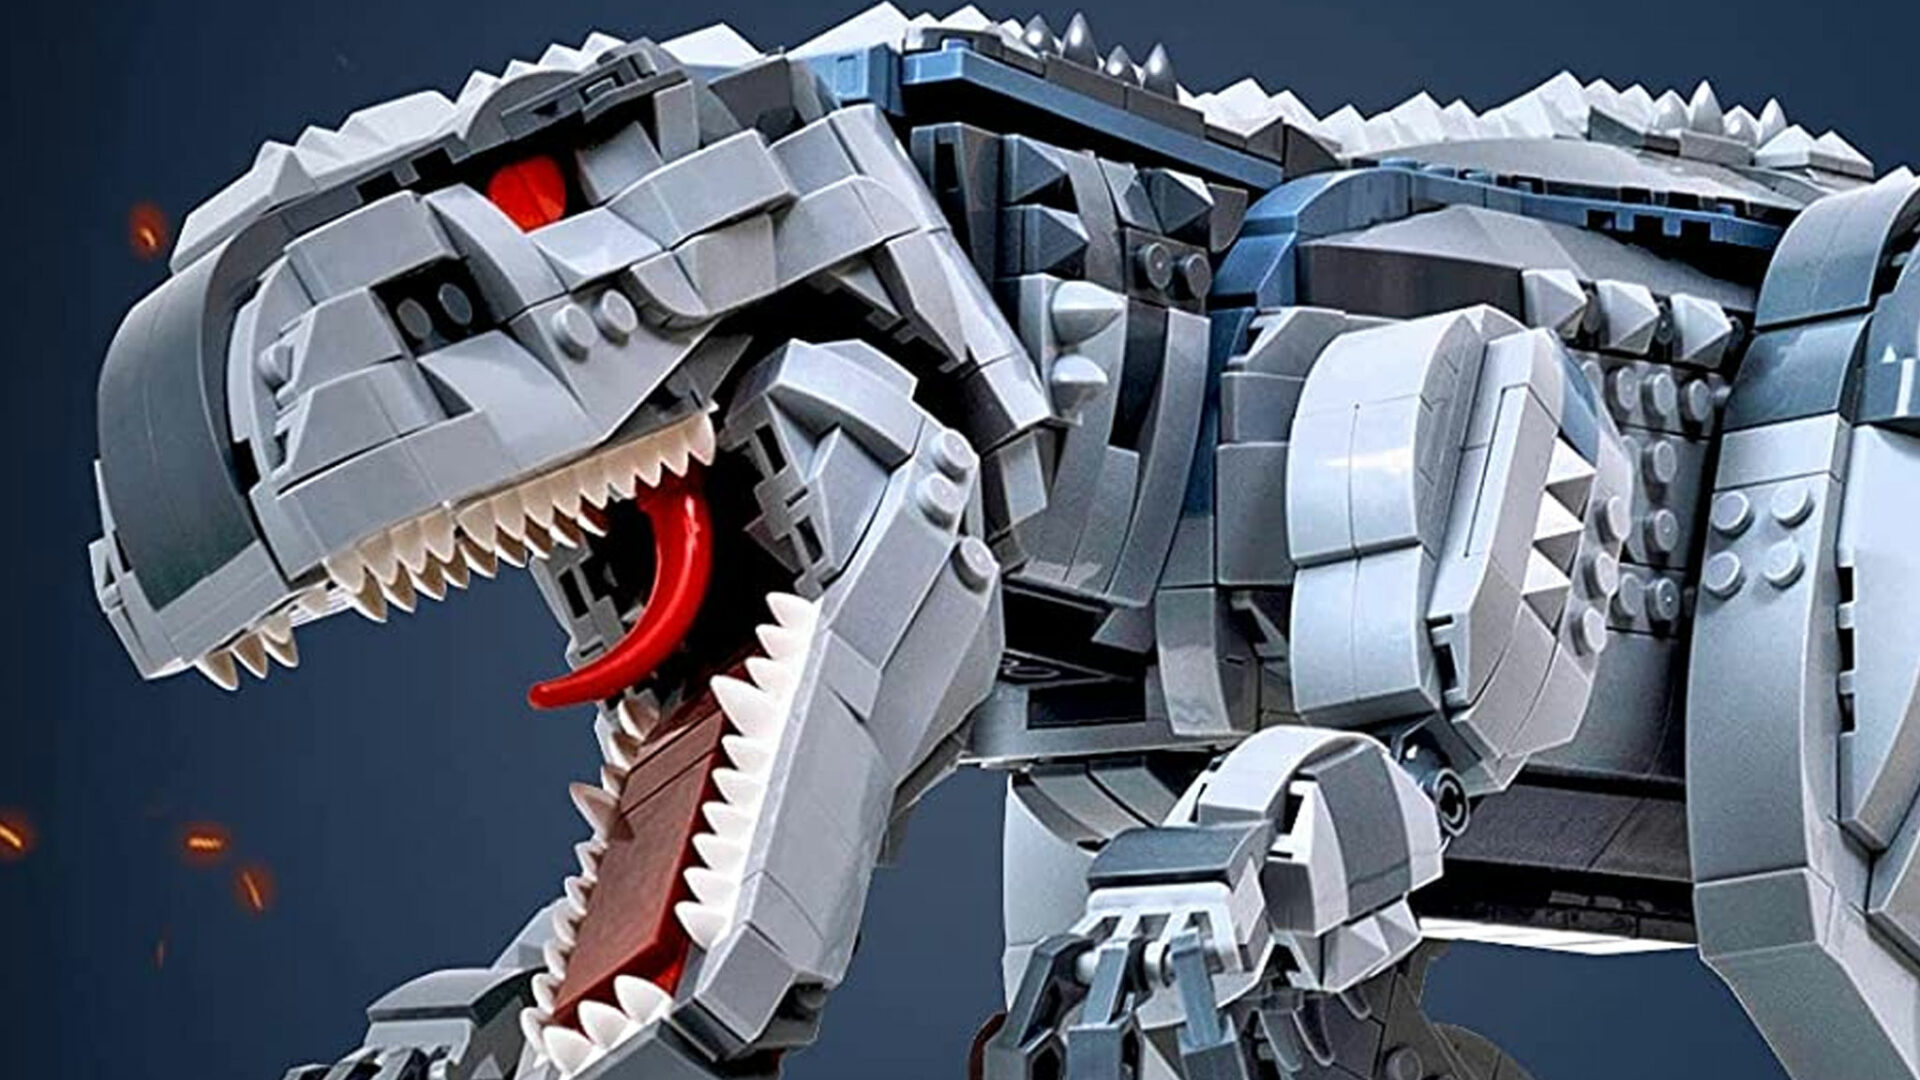 Not enough LEGO dinosaur sets? Check out our favorite alternative brands with amazing dinosaur sets